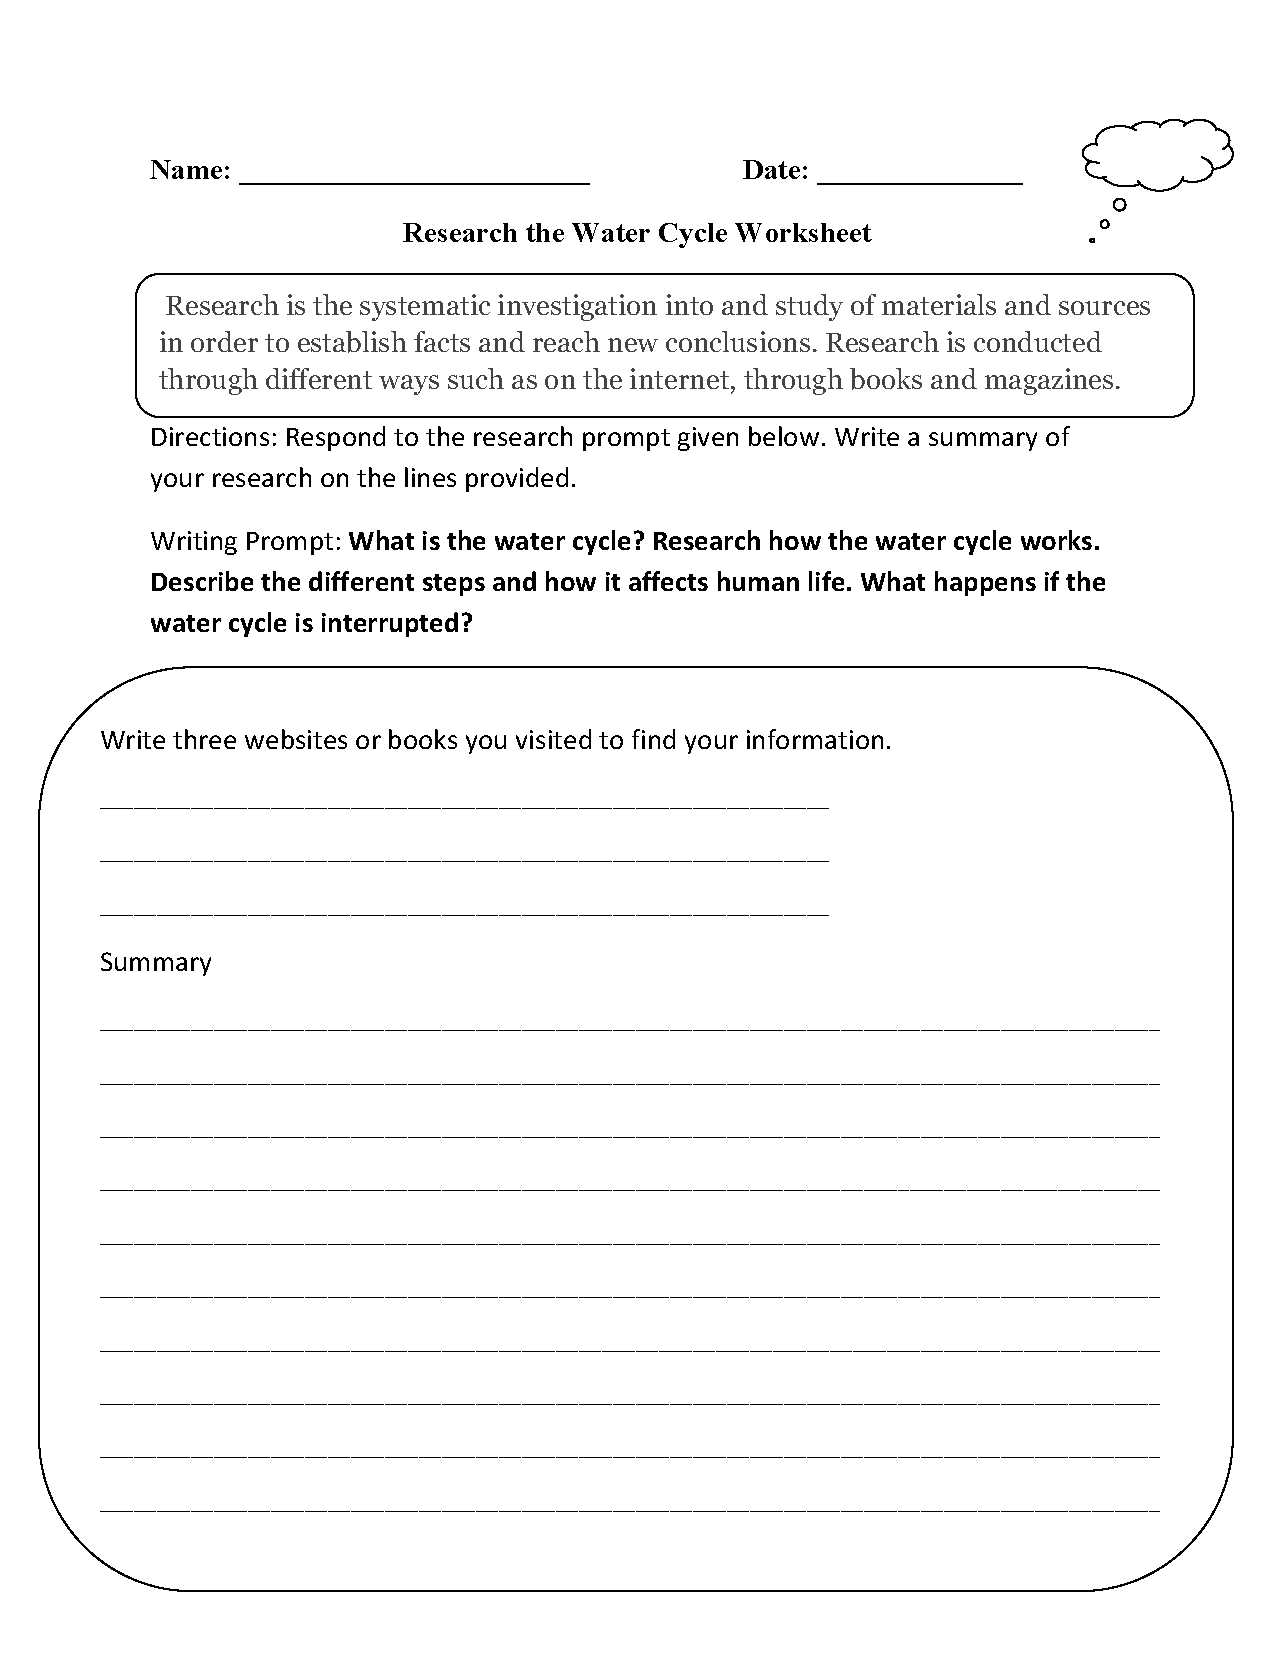 Worksheets The Water Cycle Worksheets research worksheets the water cycle worksheet worksheet